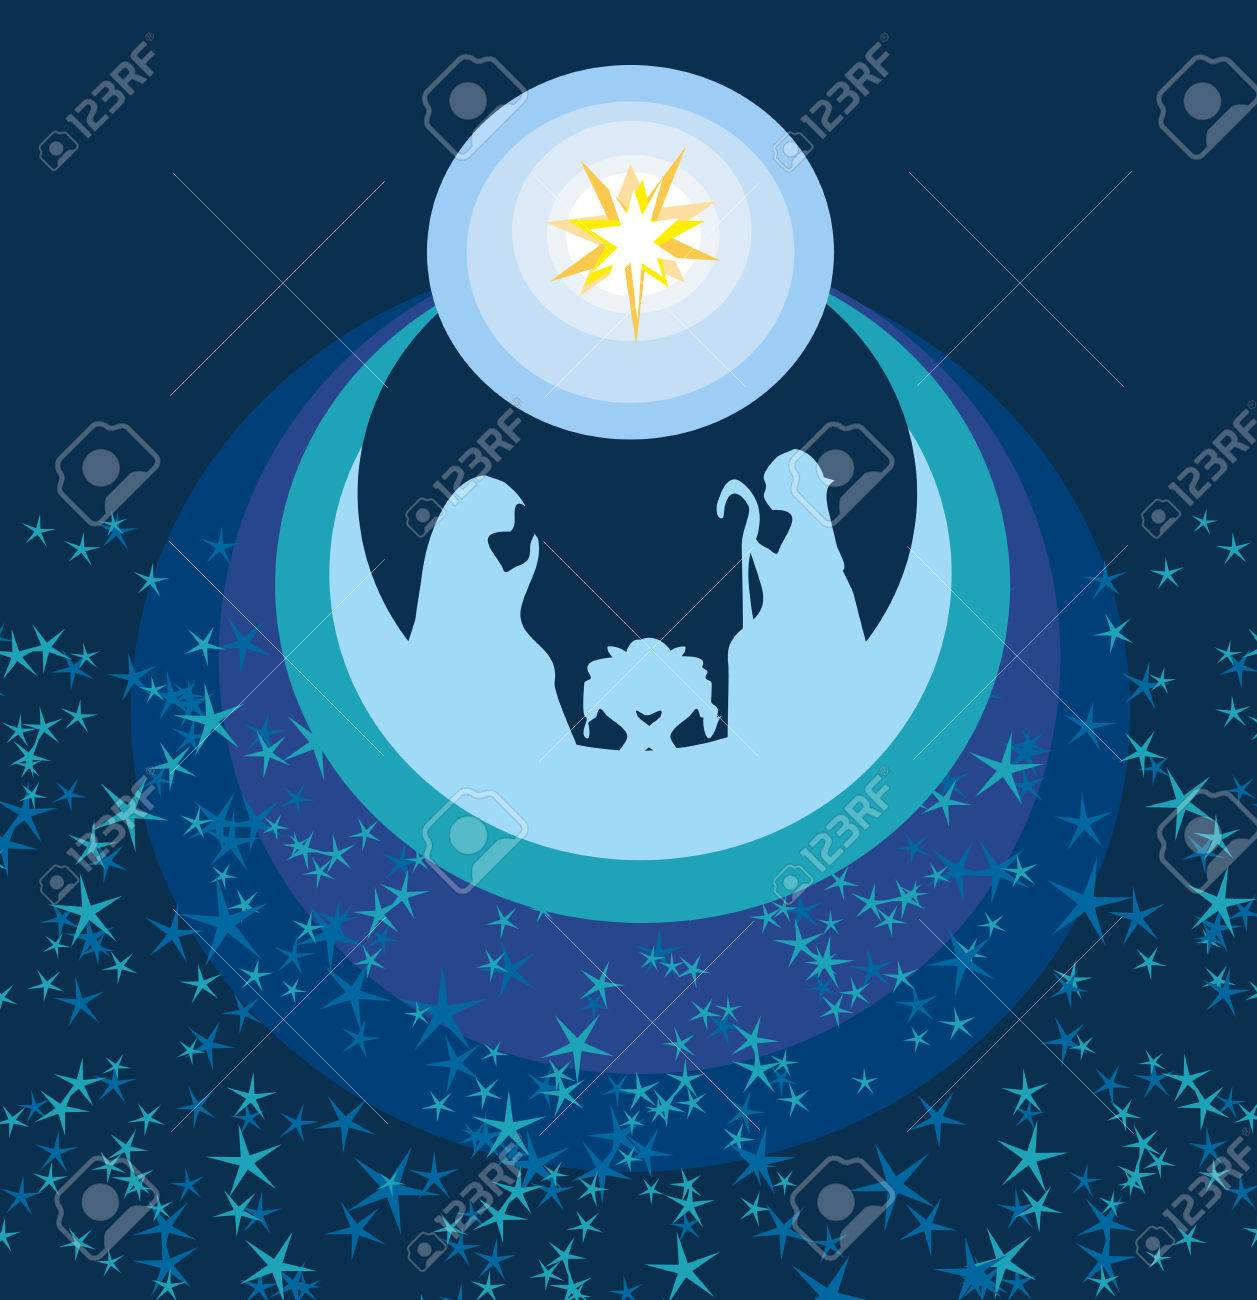 abstract Christmas card - birth of Jesus in Bethlehem. - 60942580